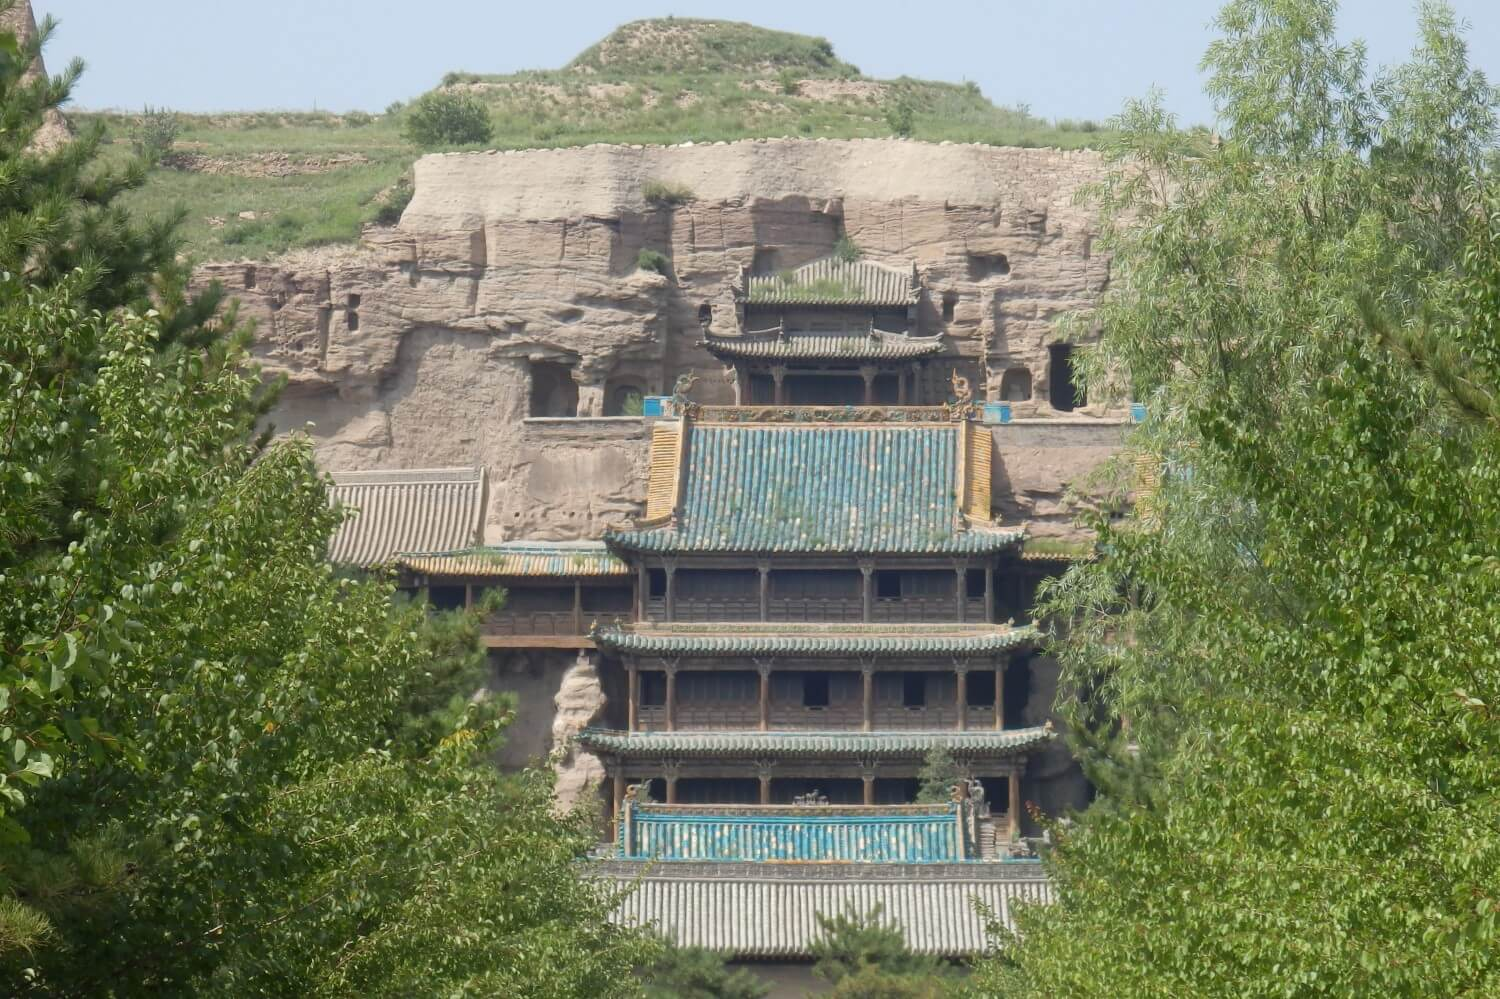 The temple entrance of the Yungang caves in China